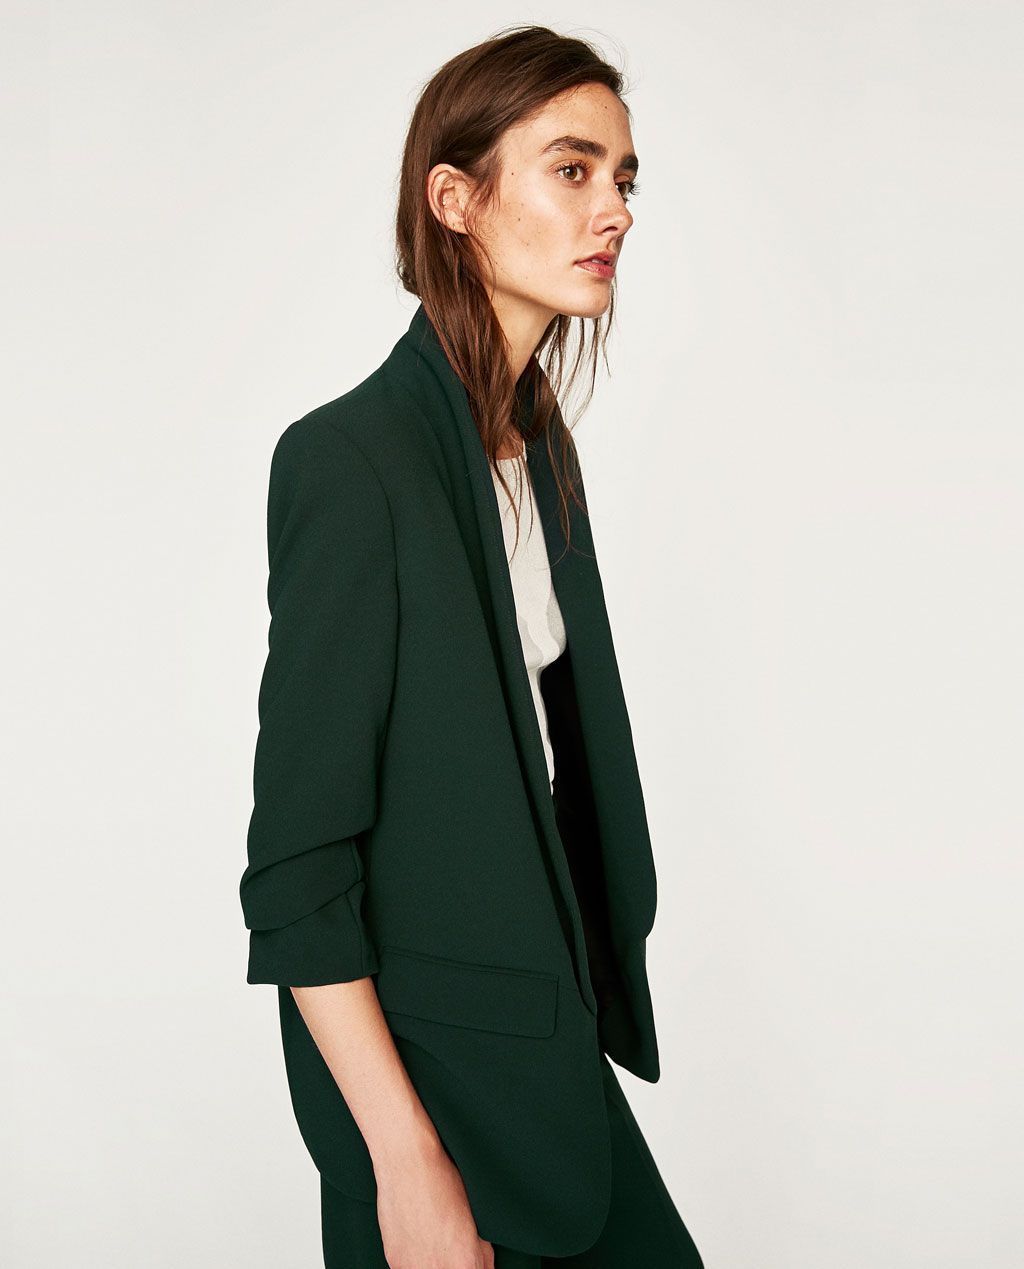 new product 1e89a c1214 ROLL-UP SLEEVE JACKET-BLAZERS-WOMAN   ZARA in Size X-Small